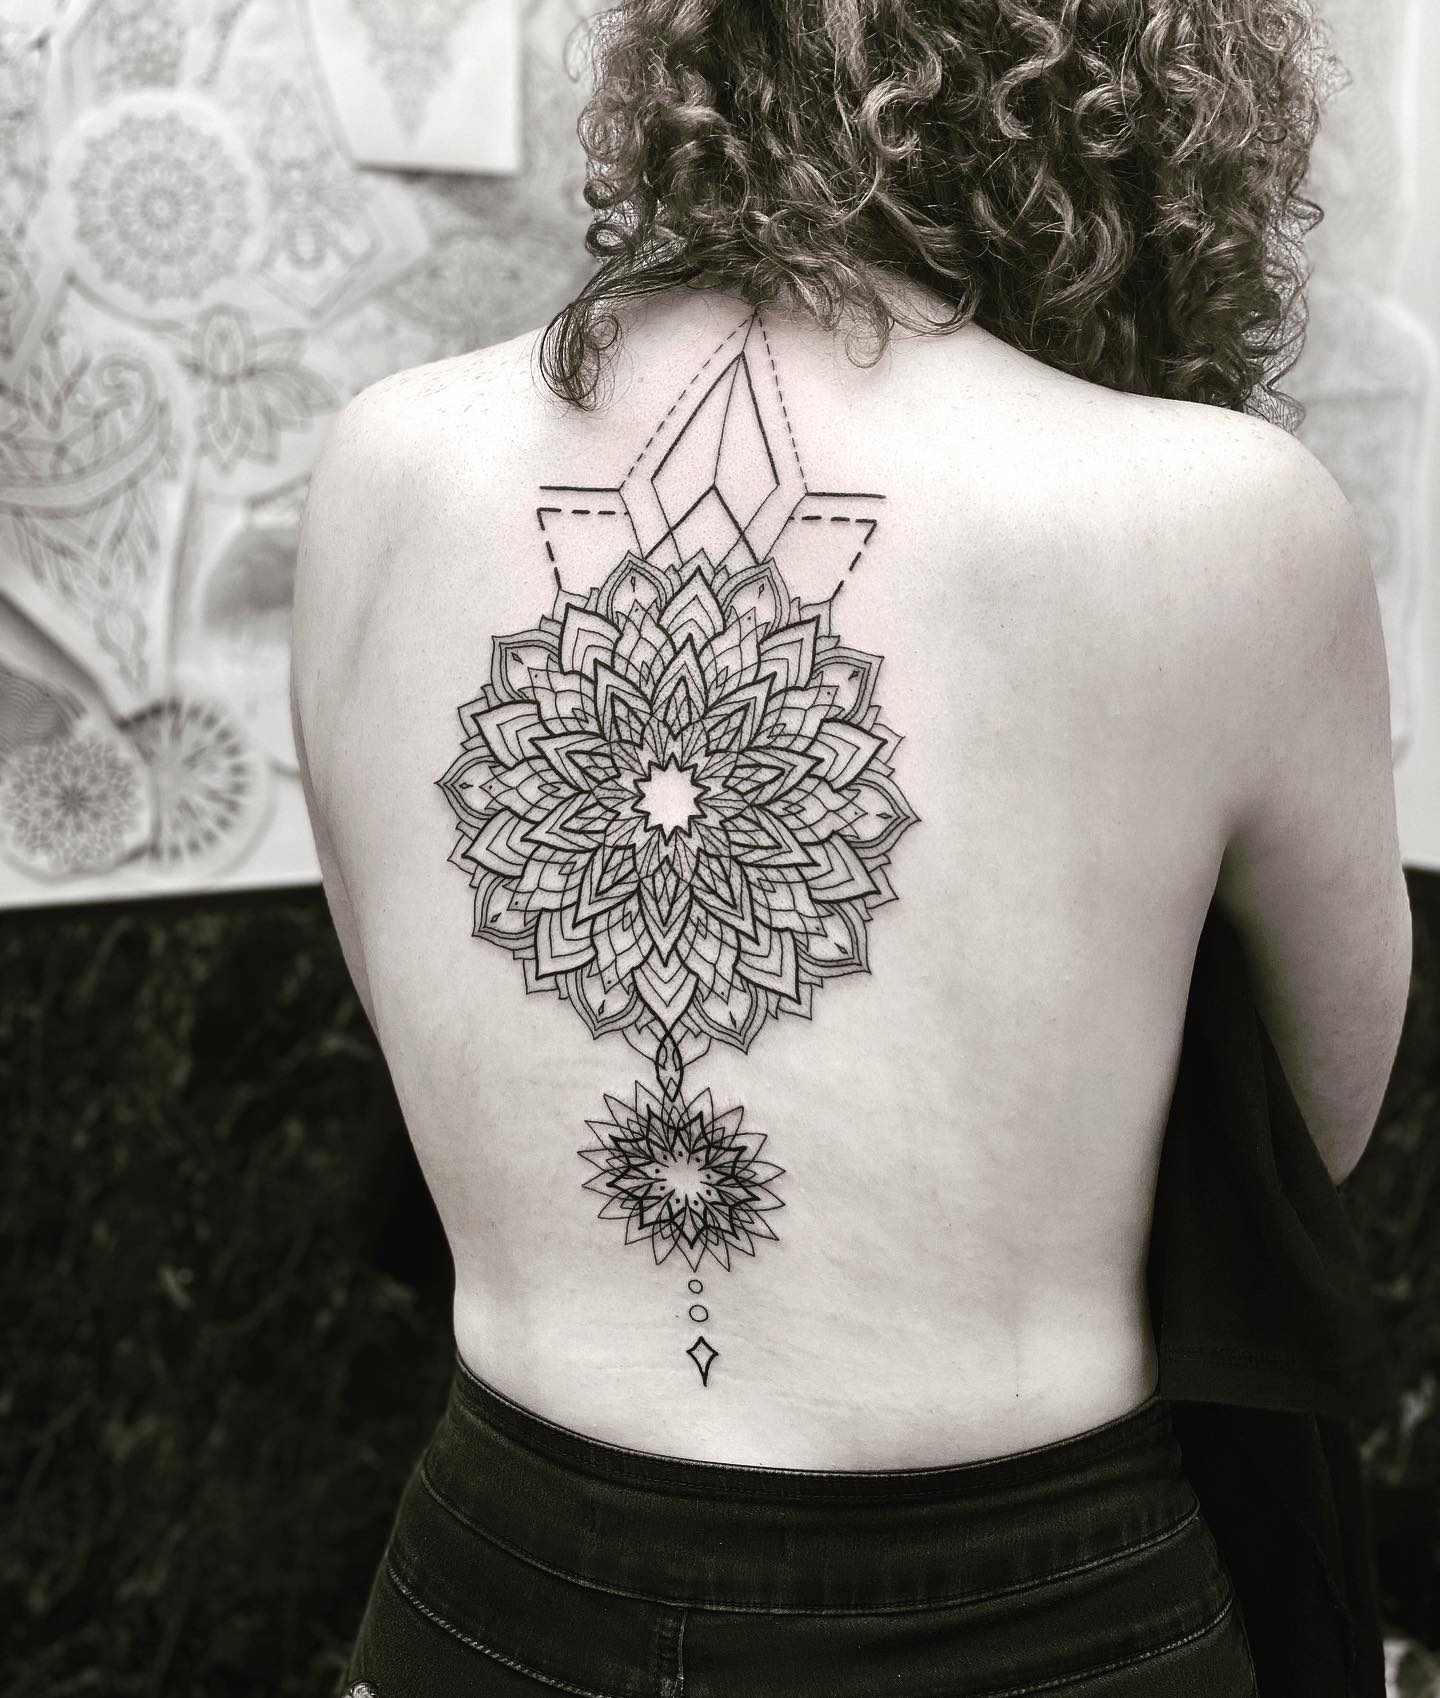 'The first time you do a thing is always exciting.' Thank Rebecca it was an absolute pleasure to do your first tattoo @studioxiiigallery @studioxiiigallery studioxiii lineworktattoo mandala mandalatattoo cirlcleoflife